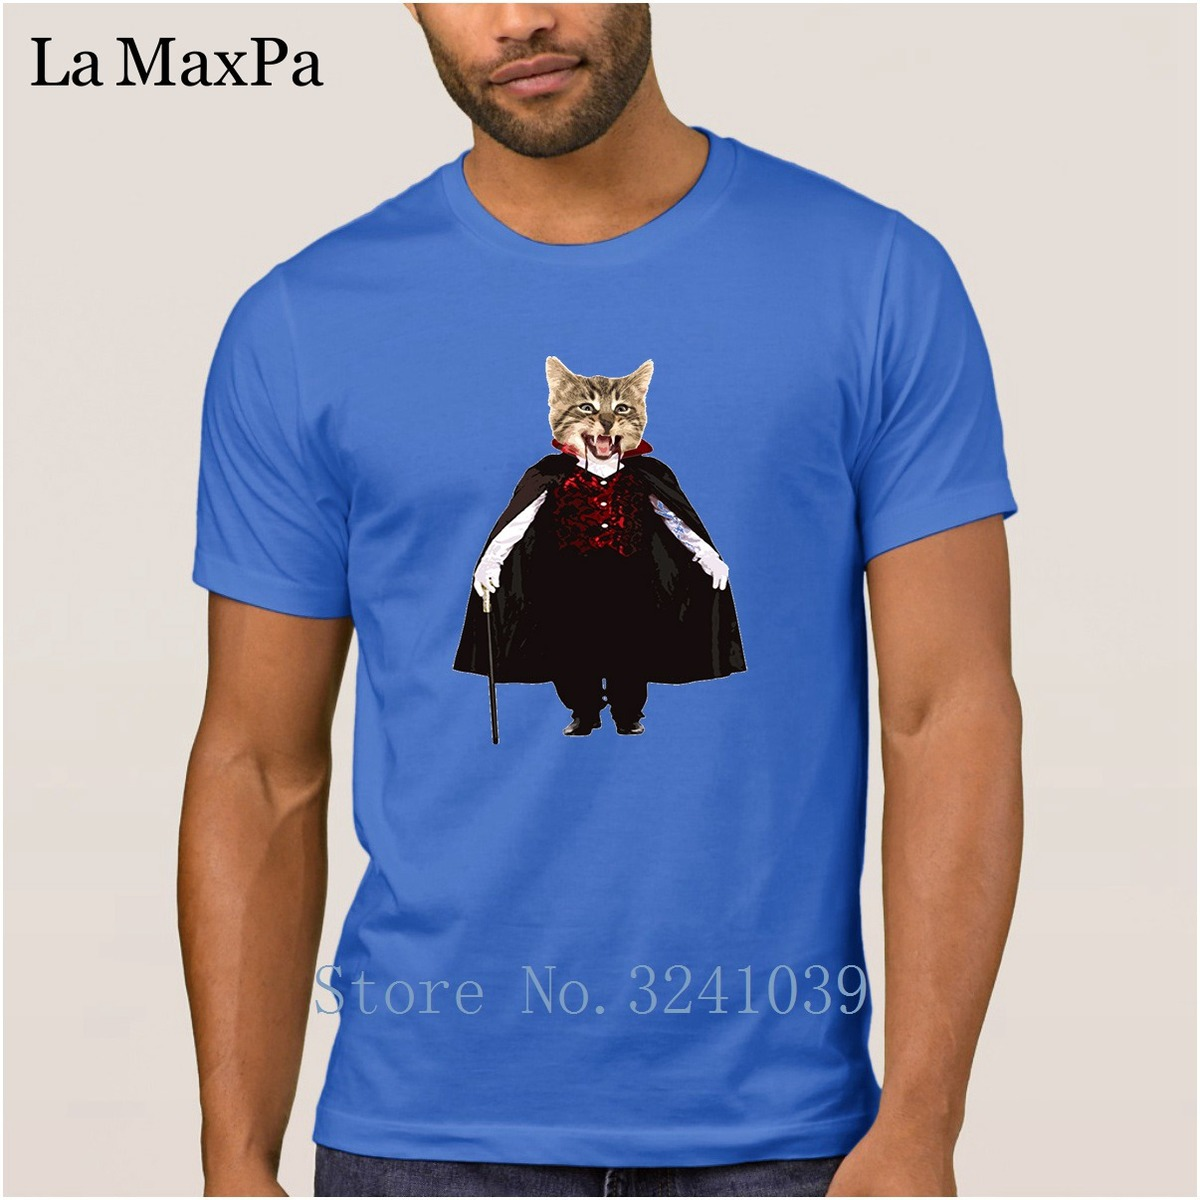 Breathable T-Shirt For Men Short Sleeve 2018 Men T Shirt Catcula Cat Kitten Halloween Tshirt Man Male Big Sizes Top Quality